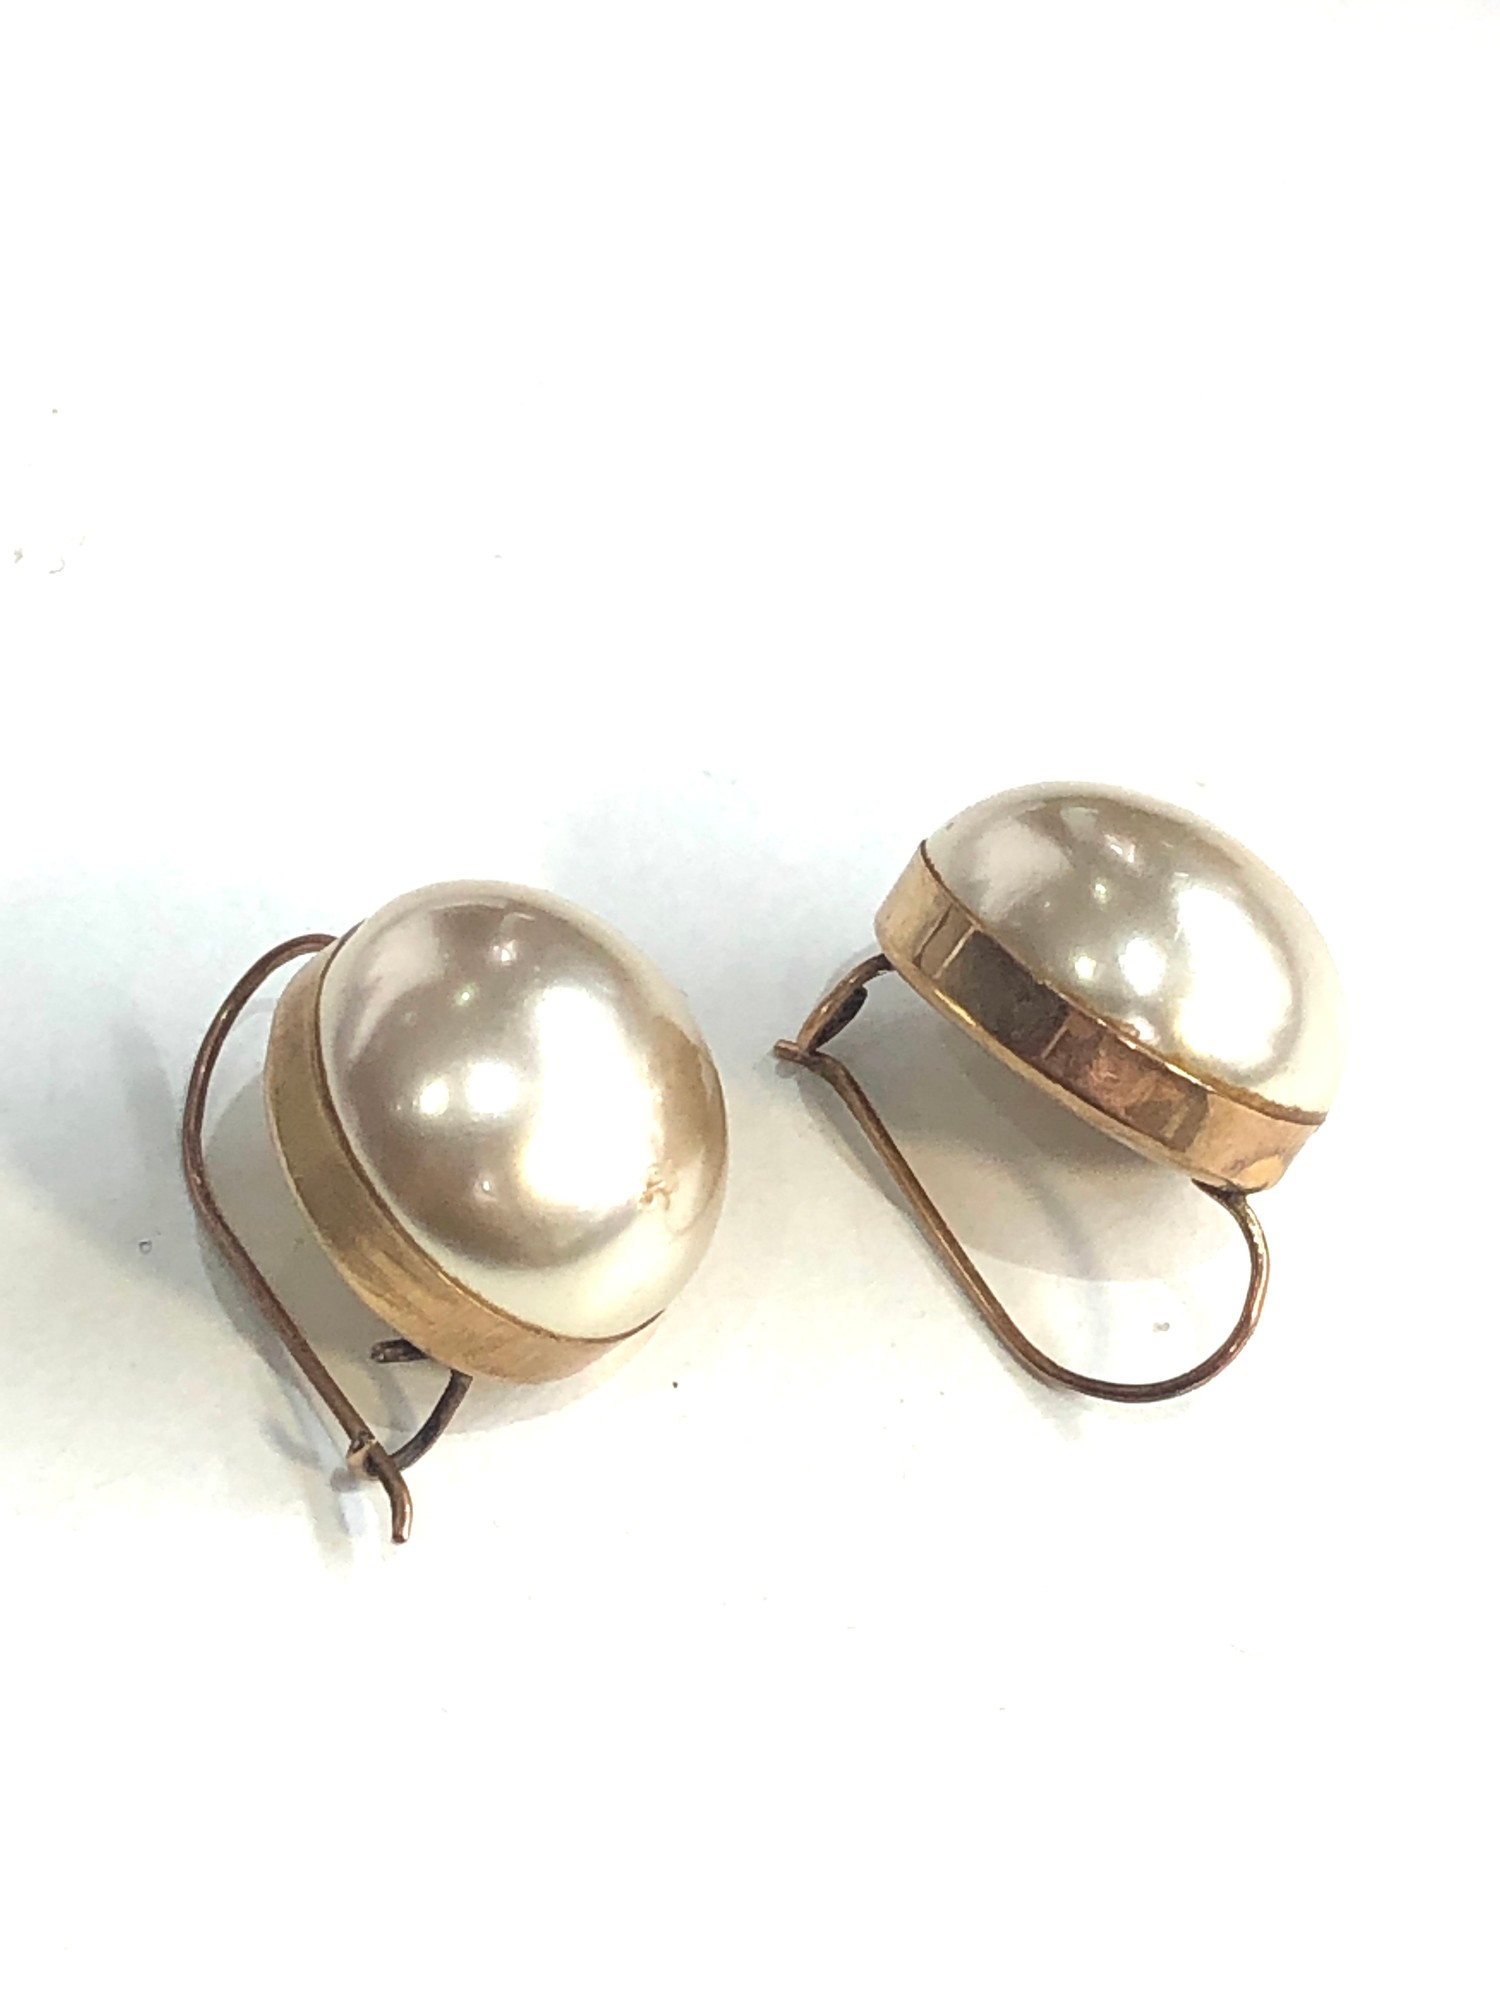 9ct gold large pearl set hook earrings weight 6.3g